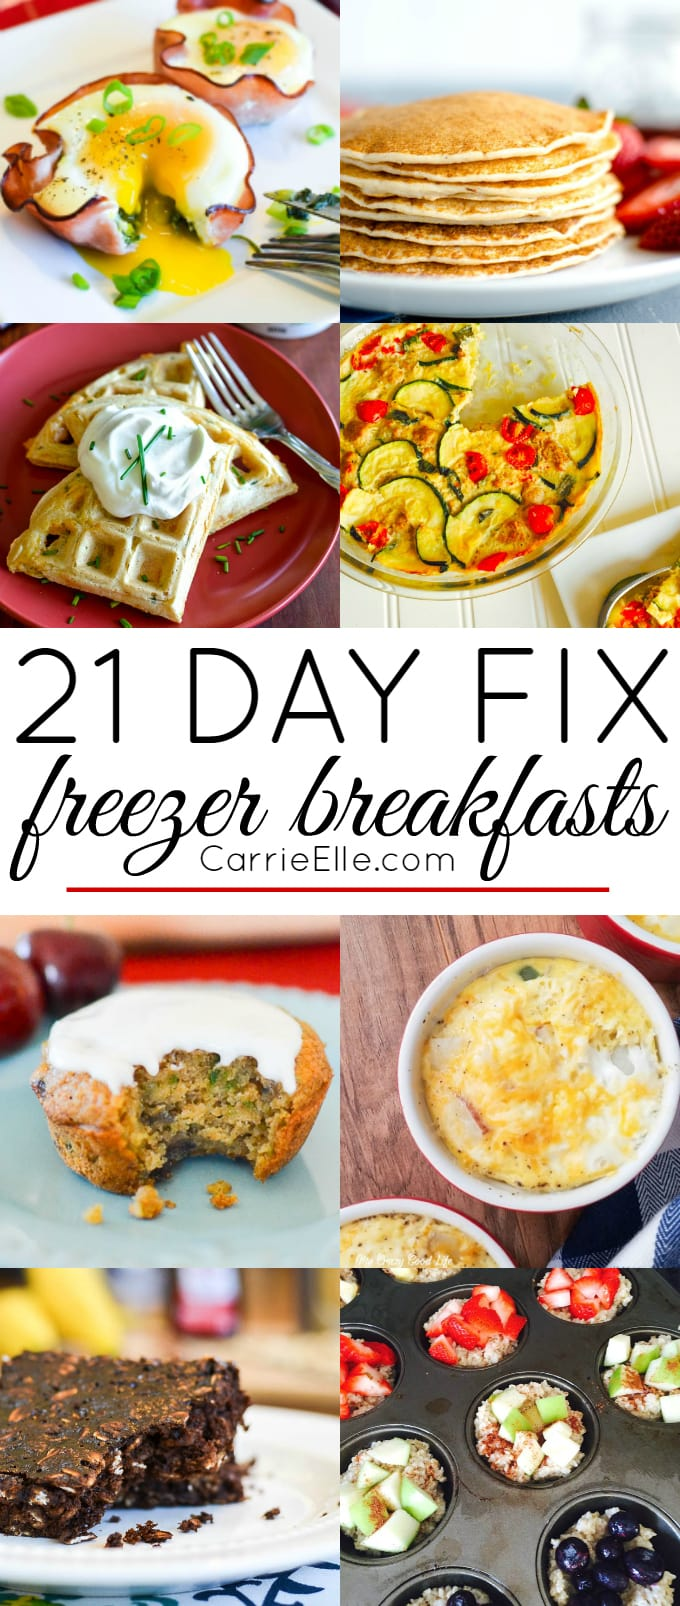 21 Day Fix Freezer Breakfasts